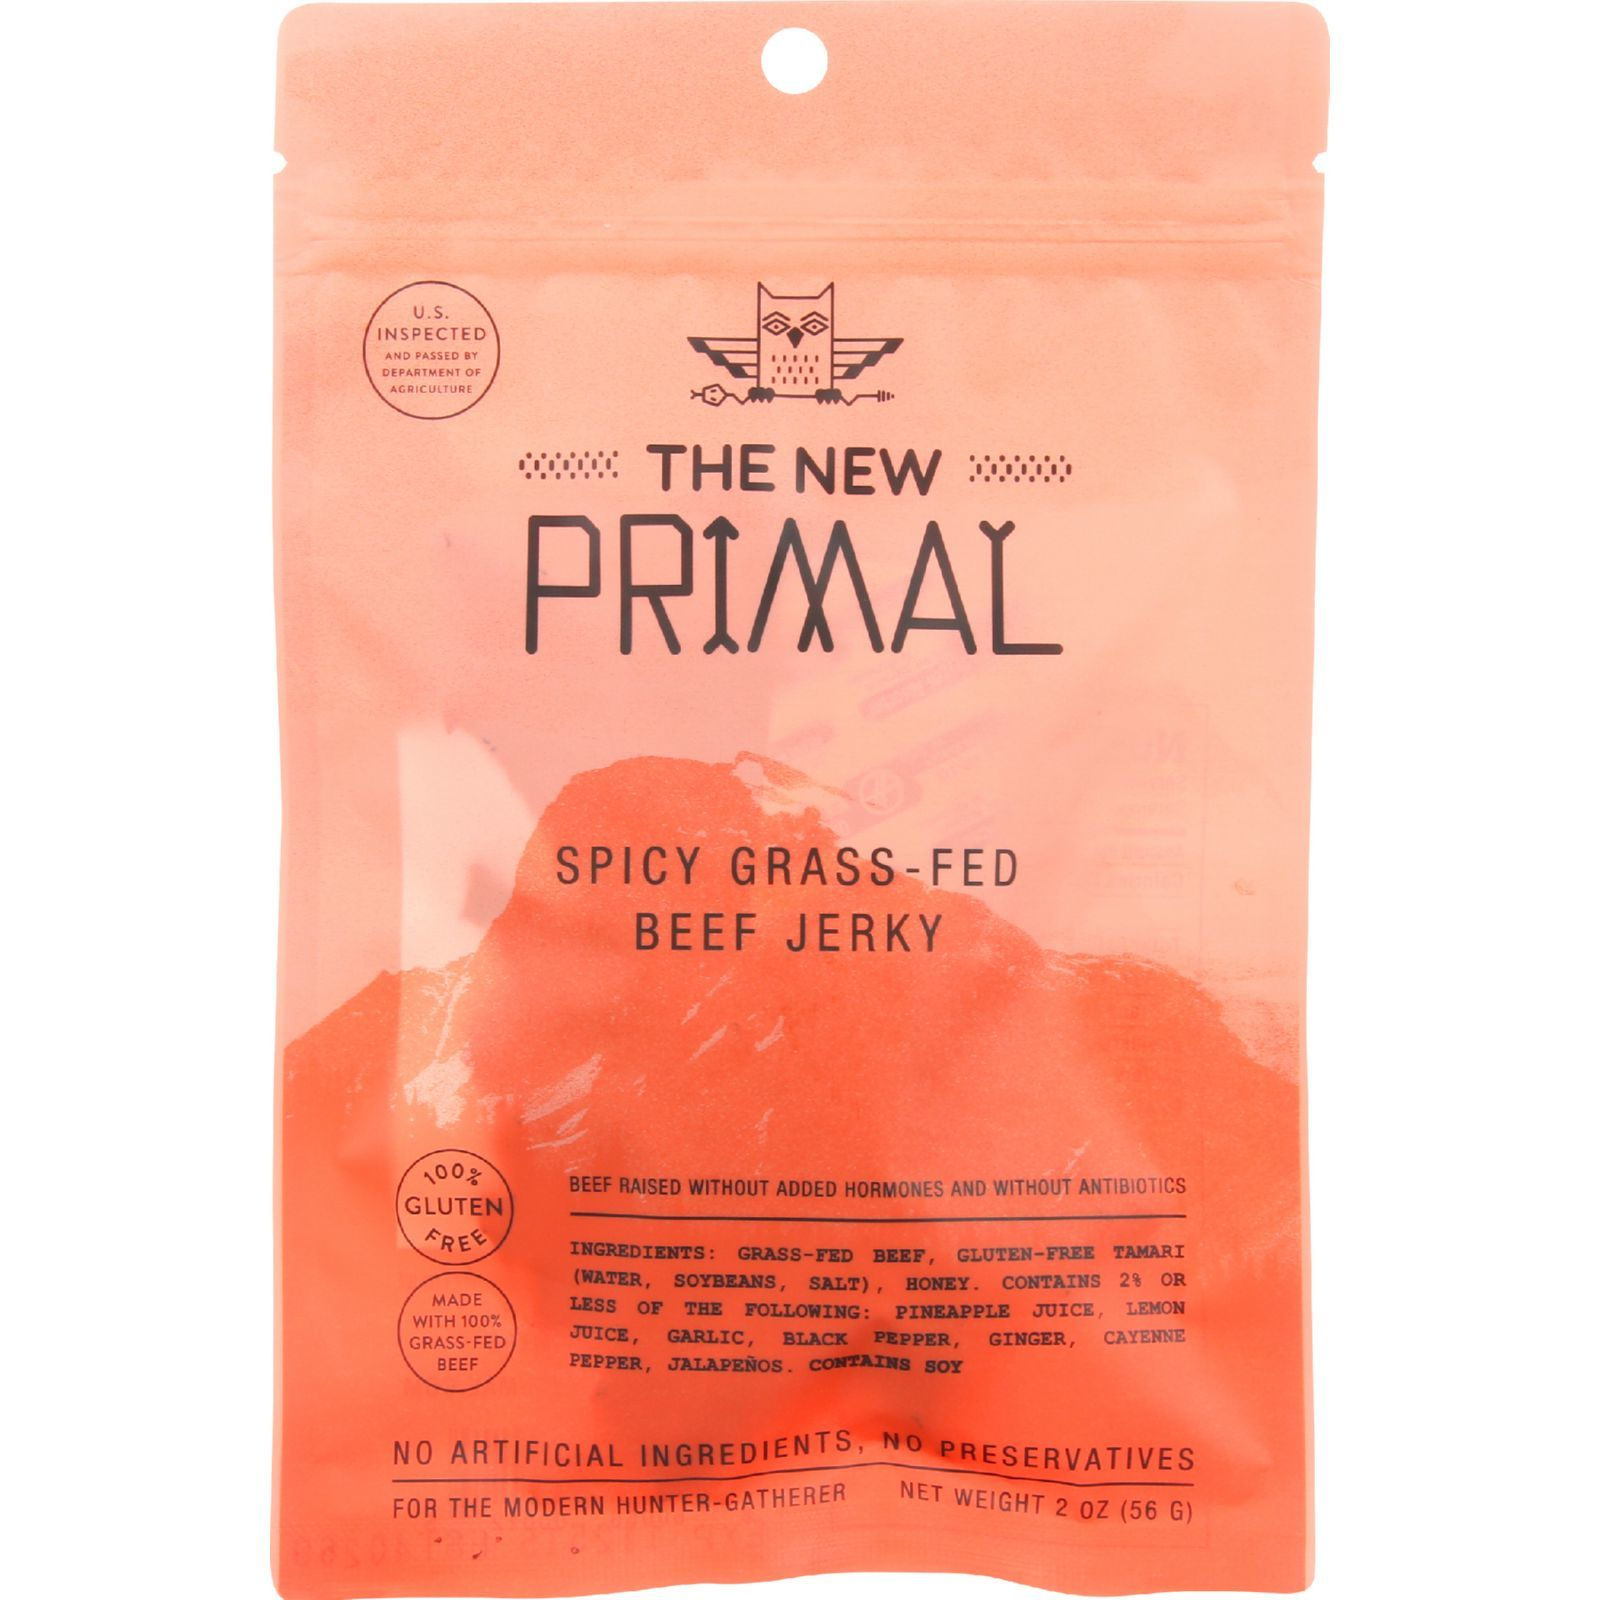 The New Primal Beef Jerky - Spicy - Gluten Free - 2 oz - case of 8